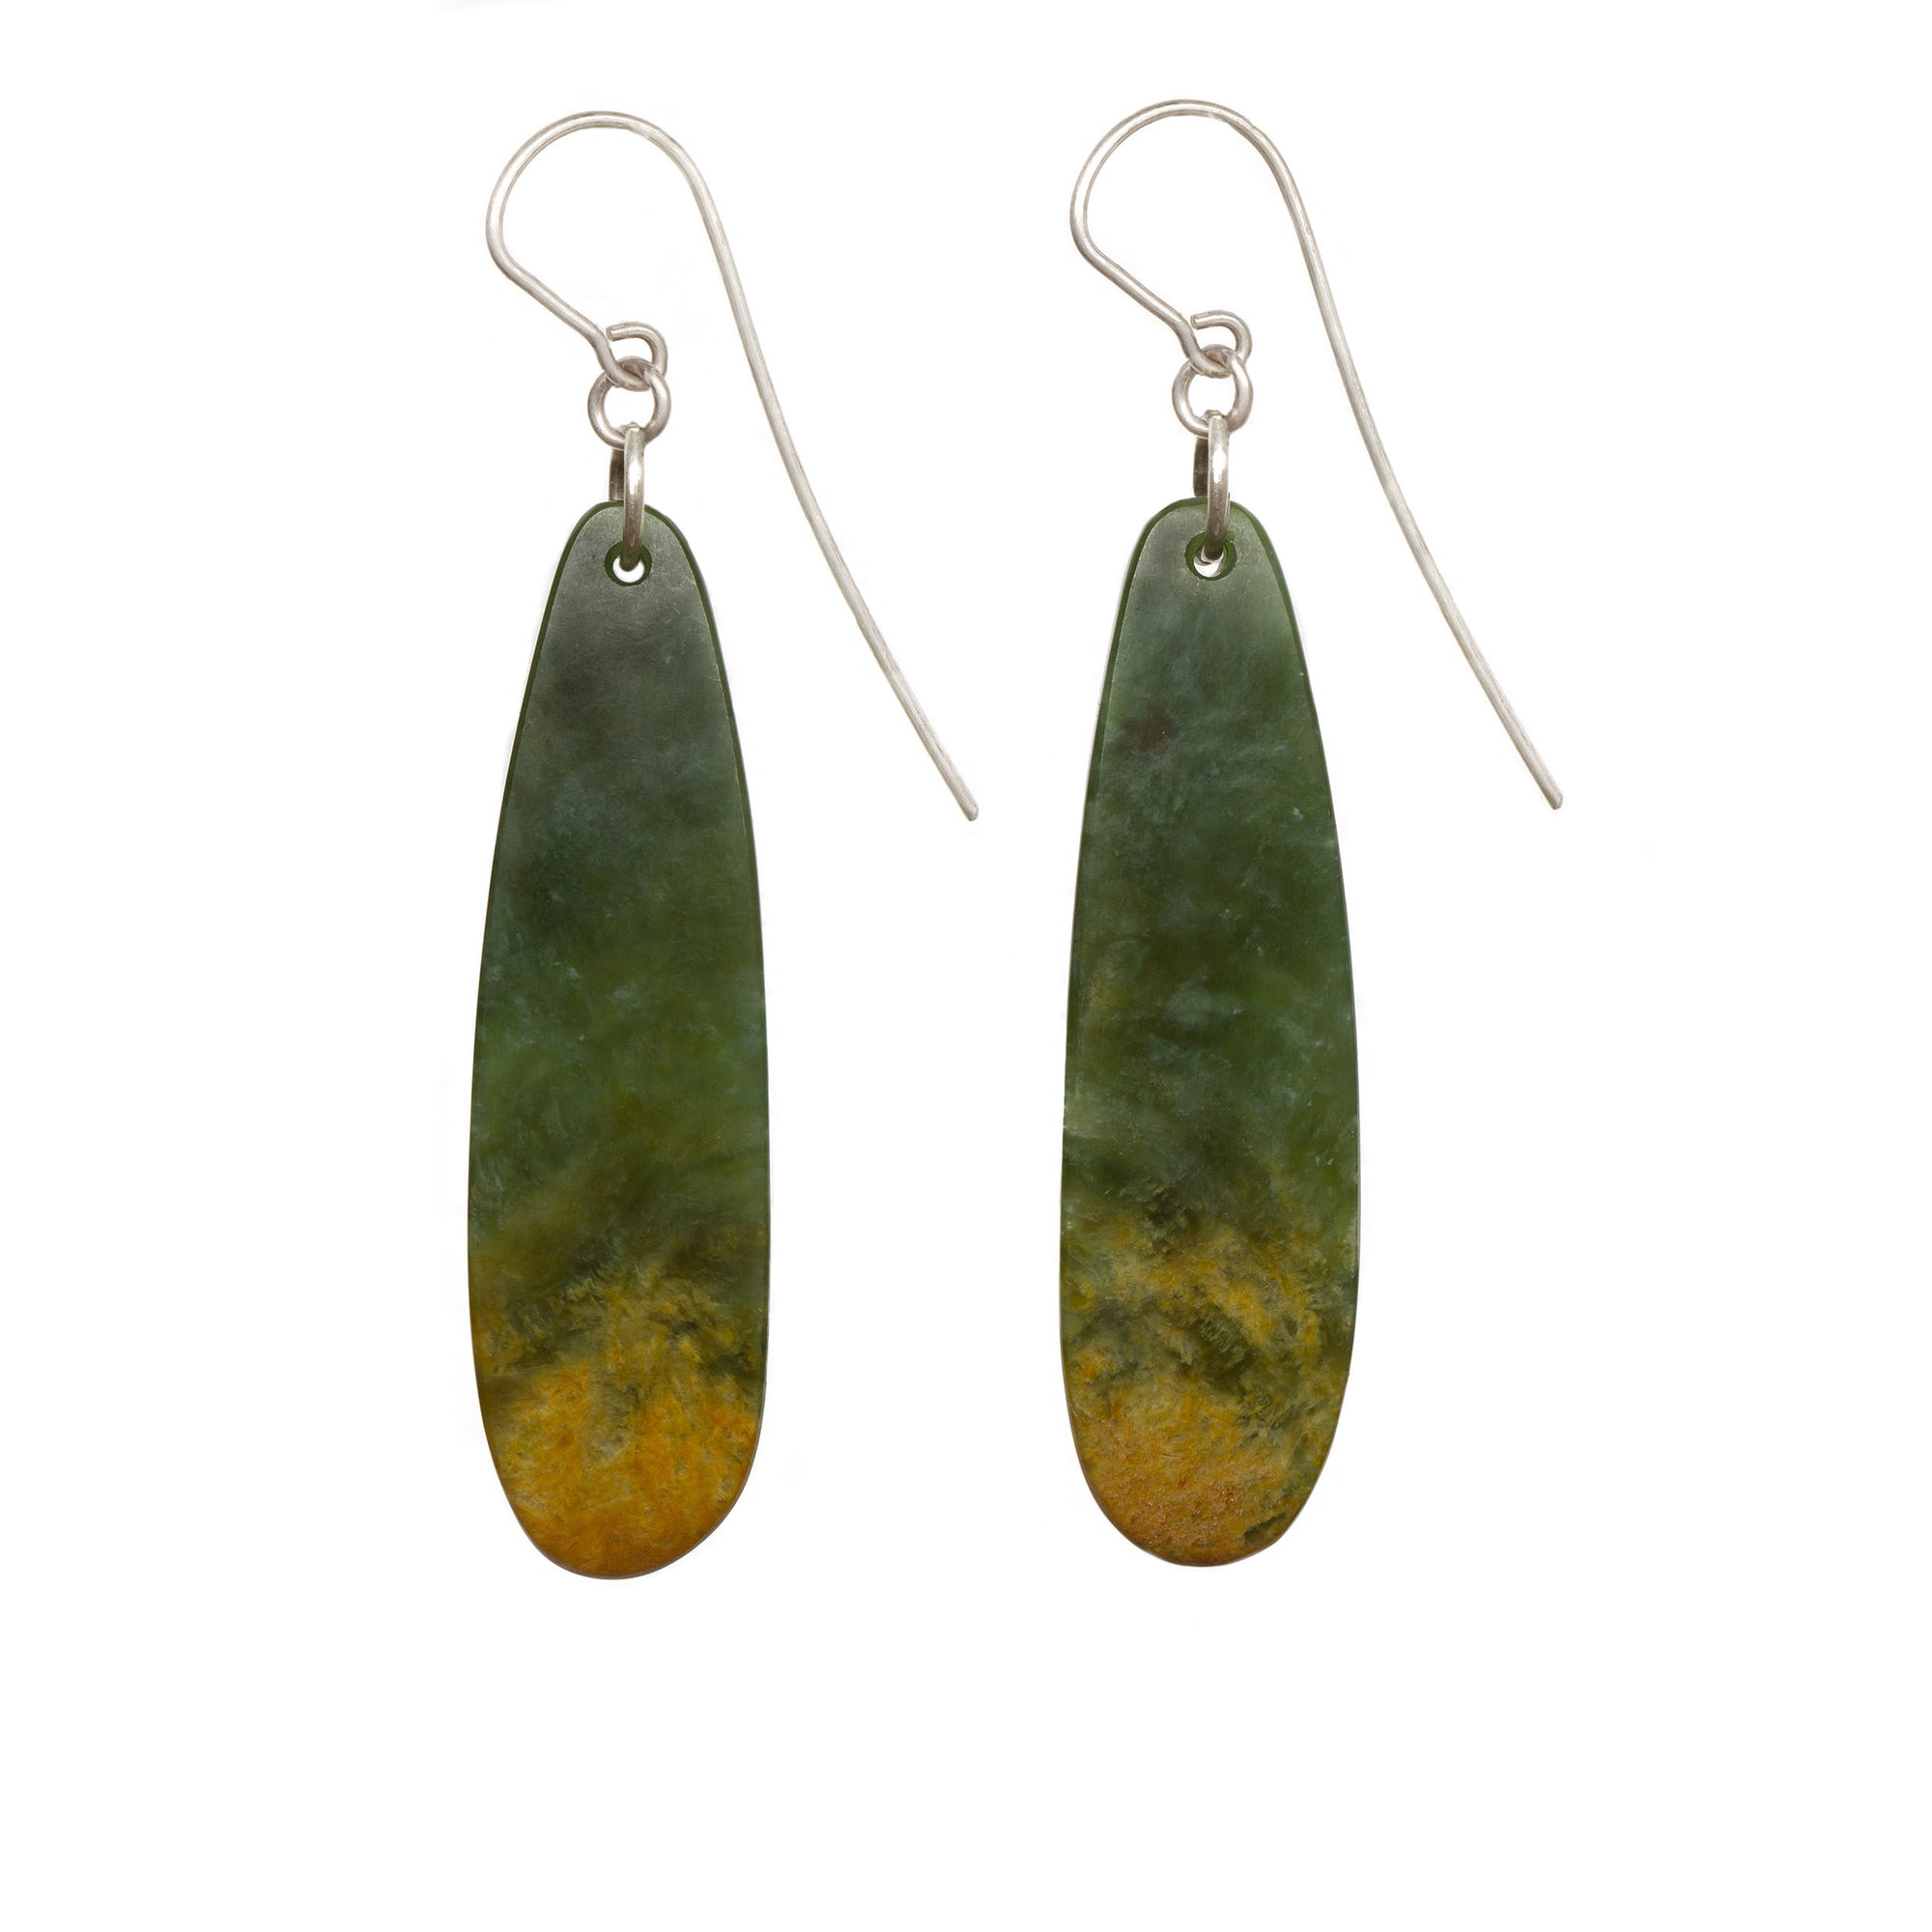 New Zealand Flower Jade Roimata Earrings